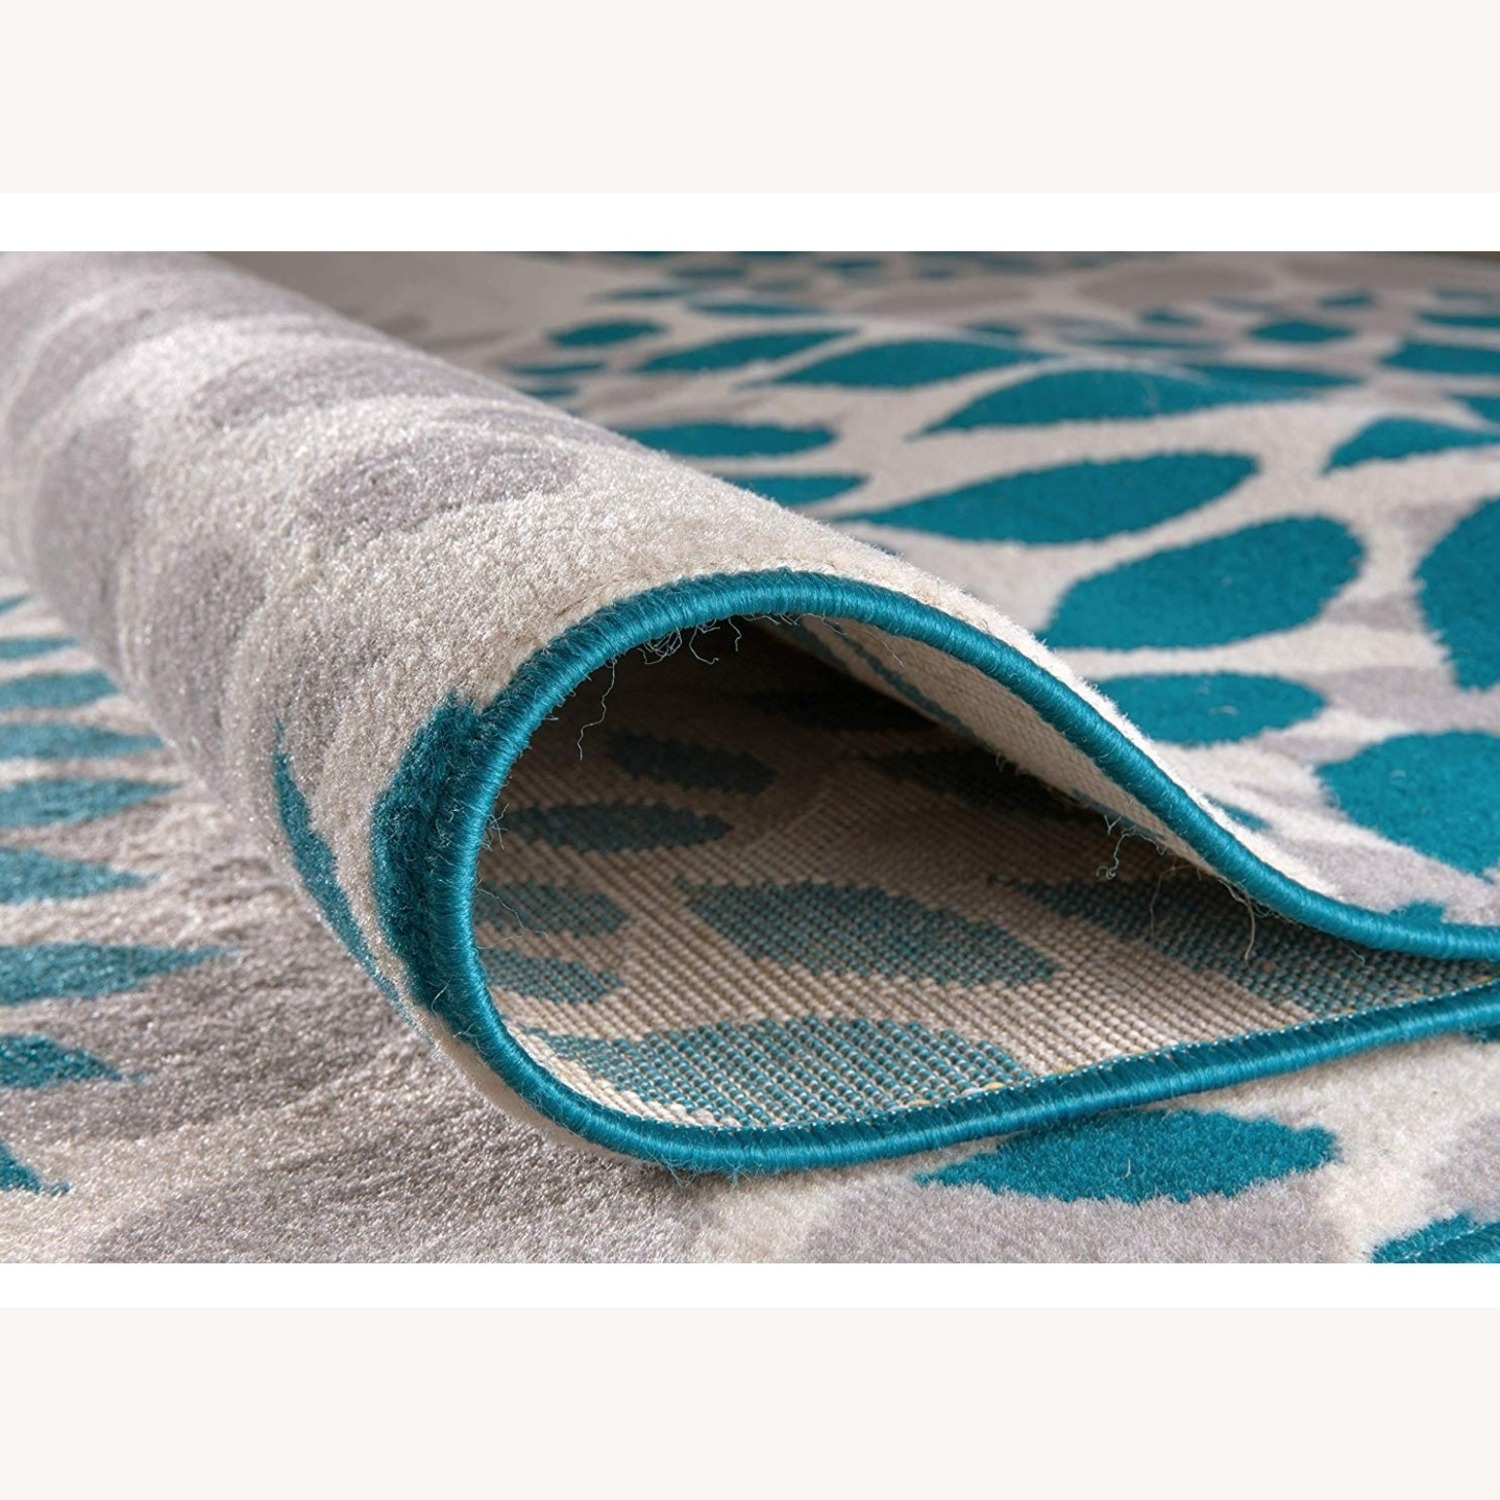 Safavieh Gray and Teal Area Rug - image-2